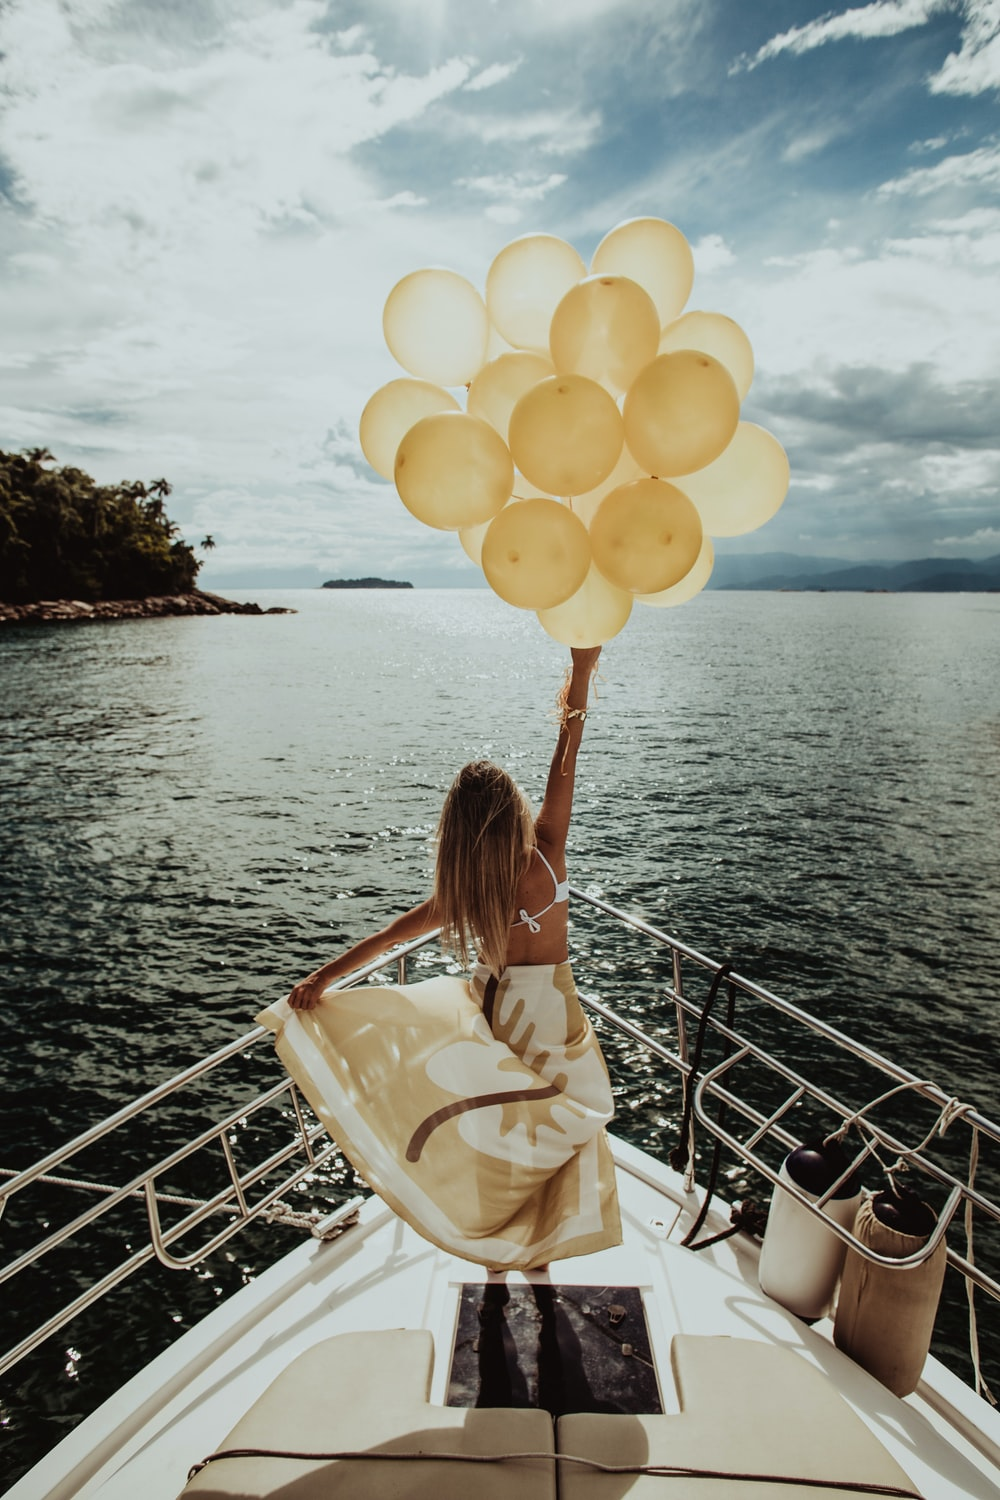 woman holding gold balloons while standing on a yacht